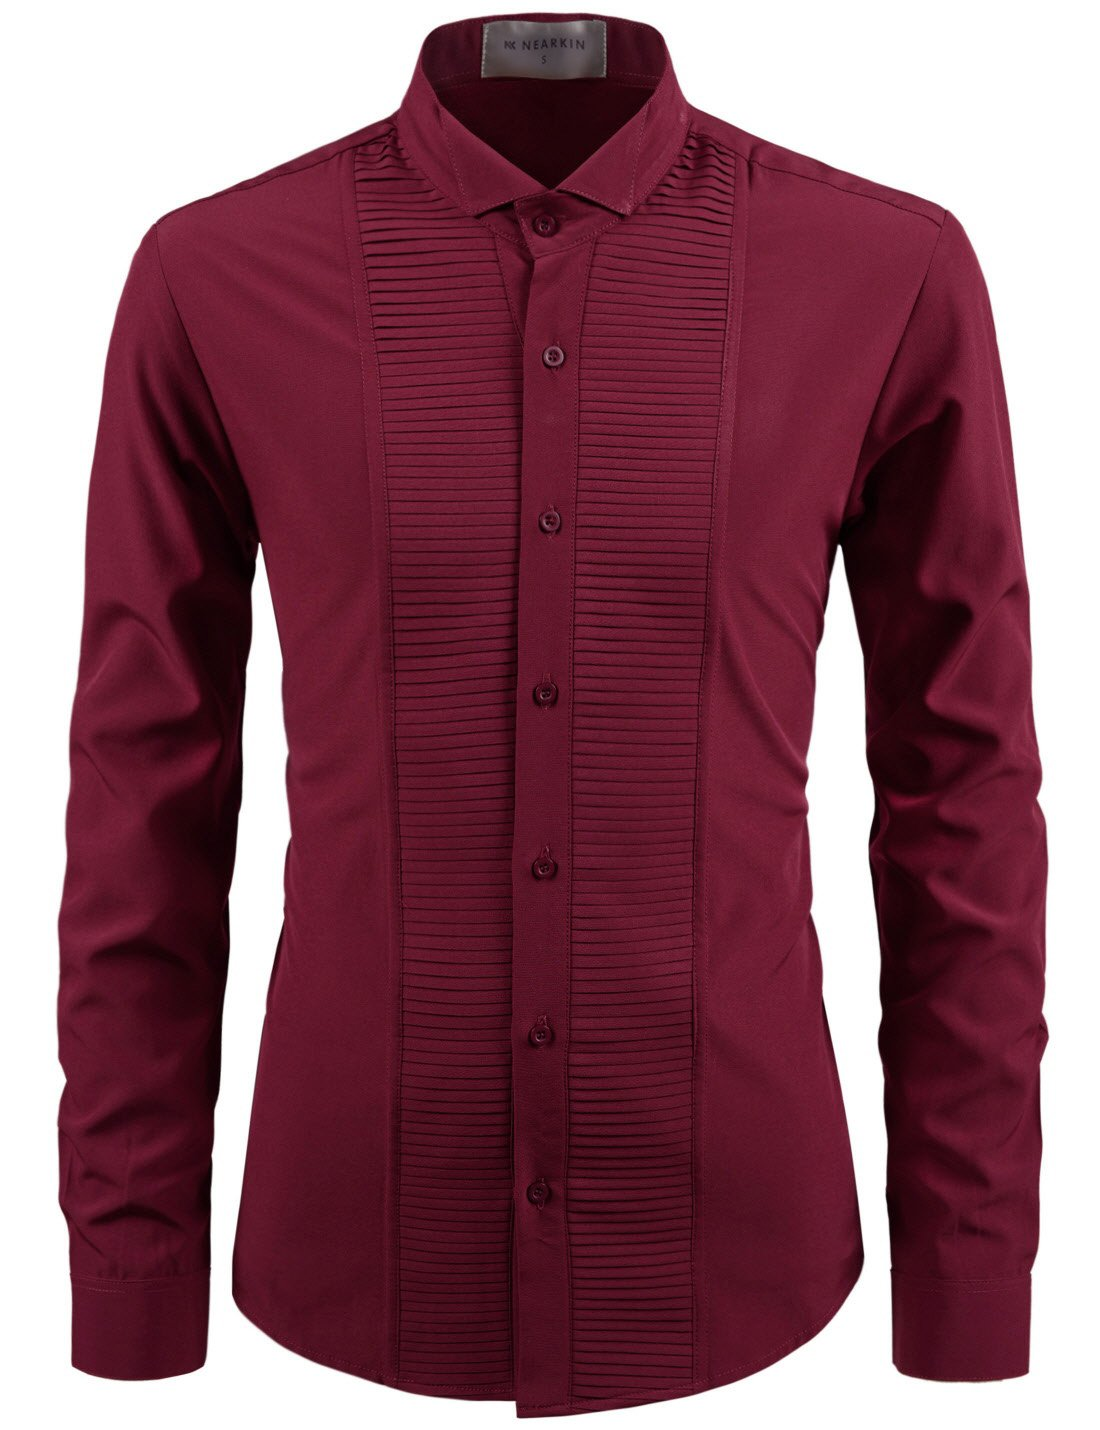 NEARKIN (NKNKS660) Adorable Mens Wrinkle Free Stretchy Fitted Dress Shirts WINE US XL(Tag size XL)